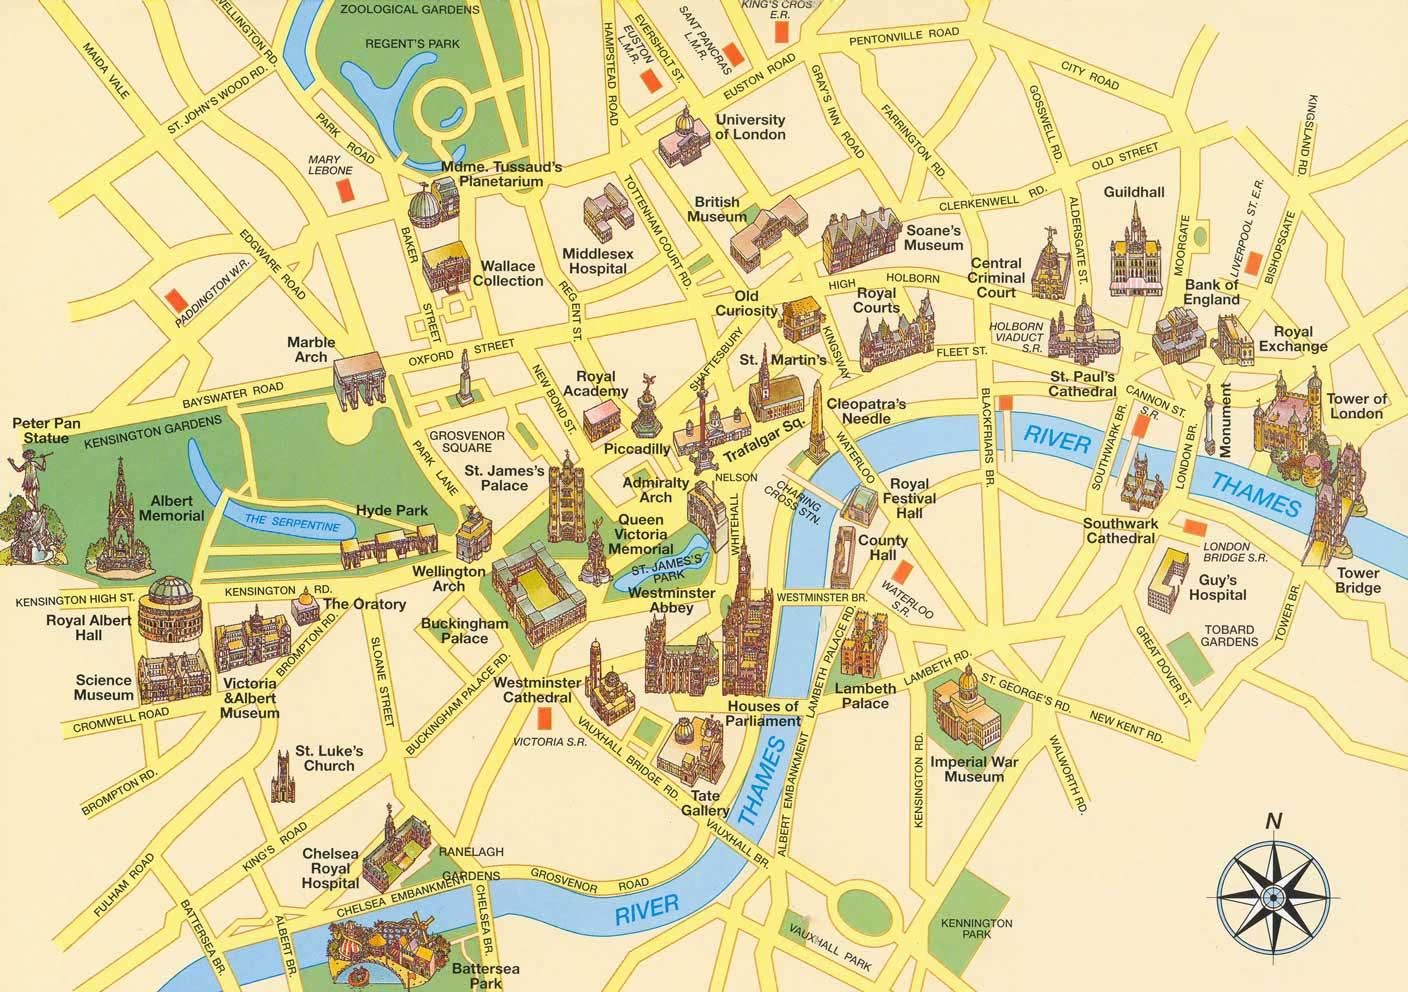 Map Of London Attractions And Hotels.Tourist Map Of London Mapsof Net Maps Pinterest London Map